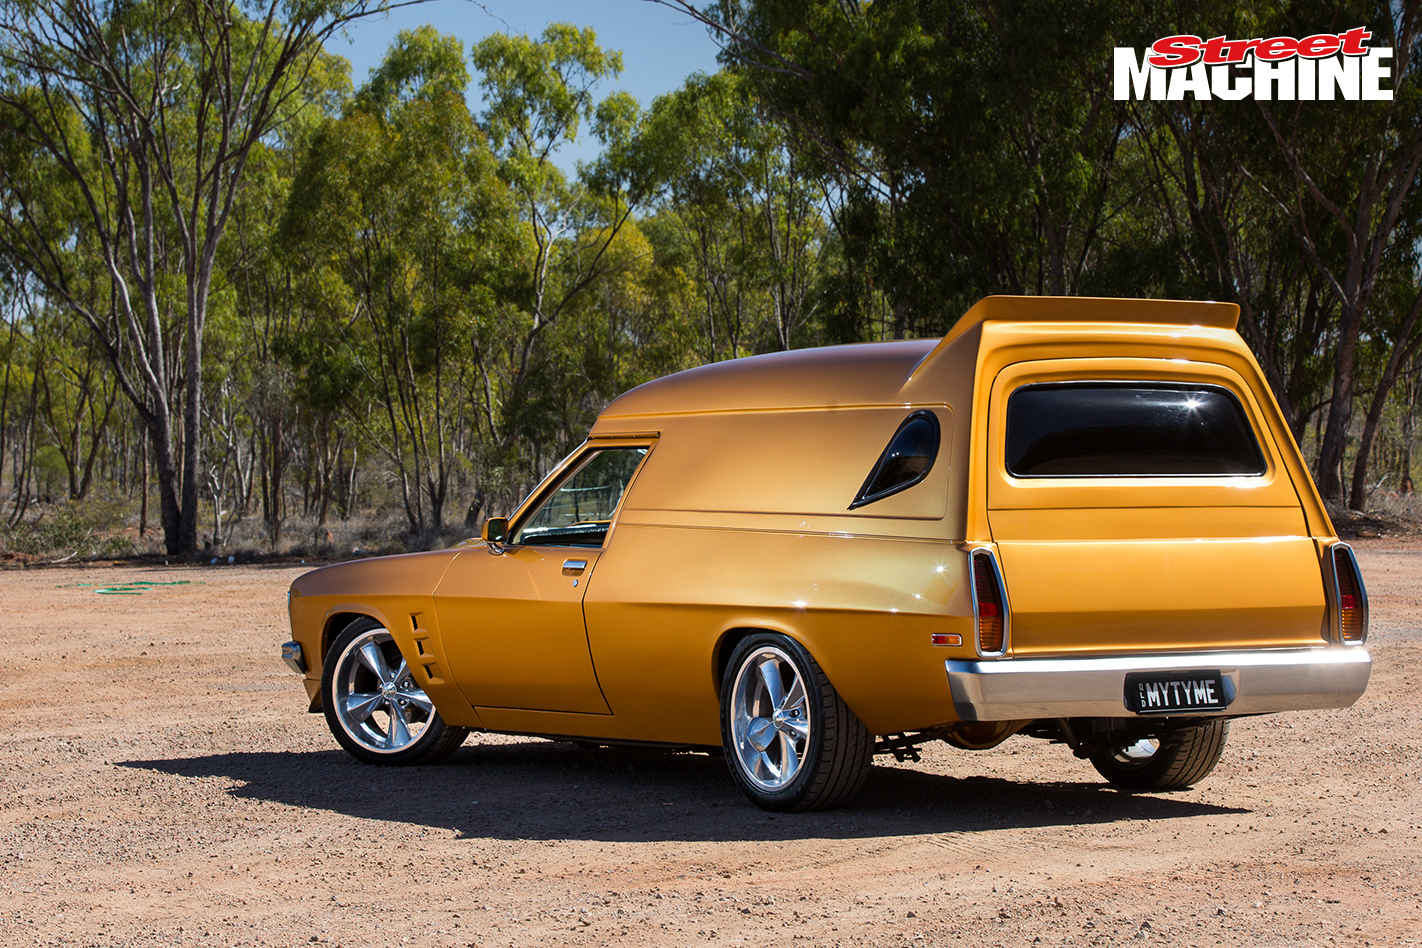 My Kia Performance >> 1976 HOLDEN HX SANDMAN PANEL VAN: READER'S CAR OF THE WEEK